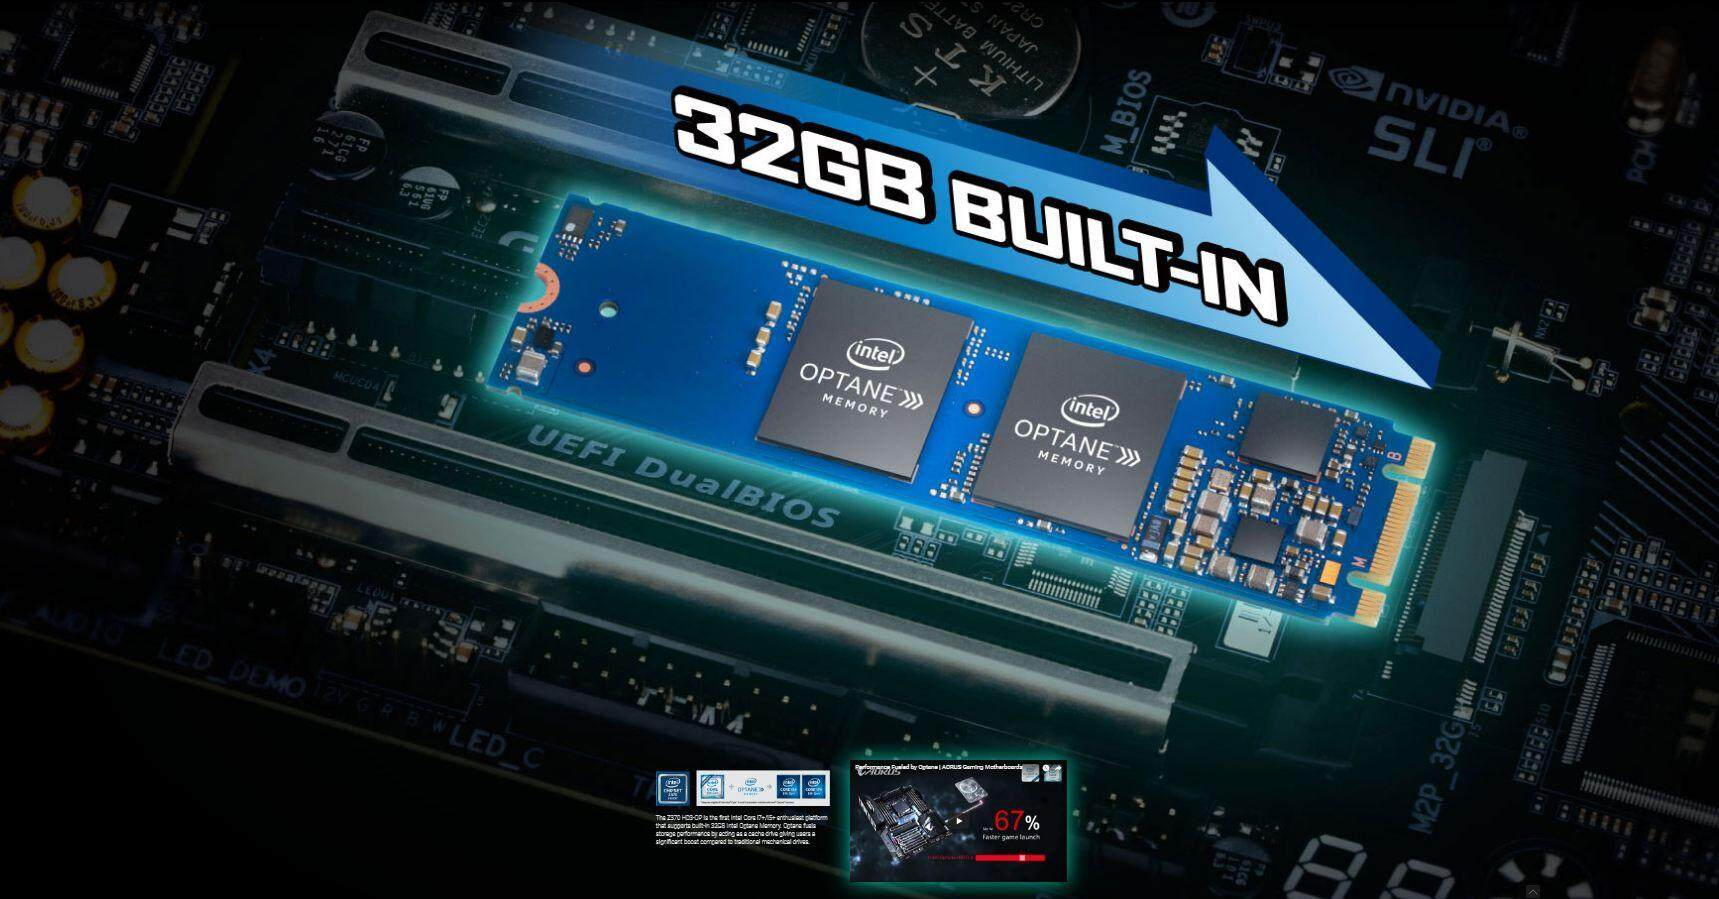 Gigabyte Z370-HD3 OP Motherboard come with 32GB Intel Optane Memory